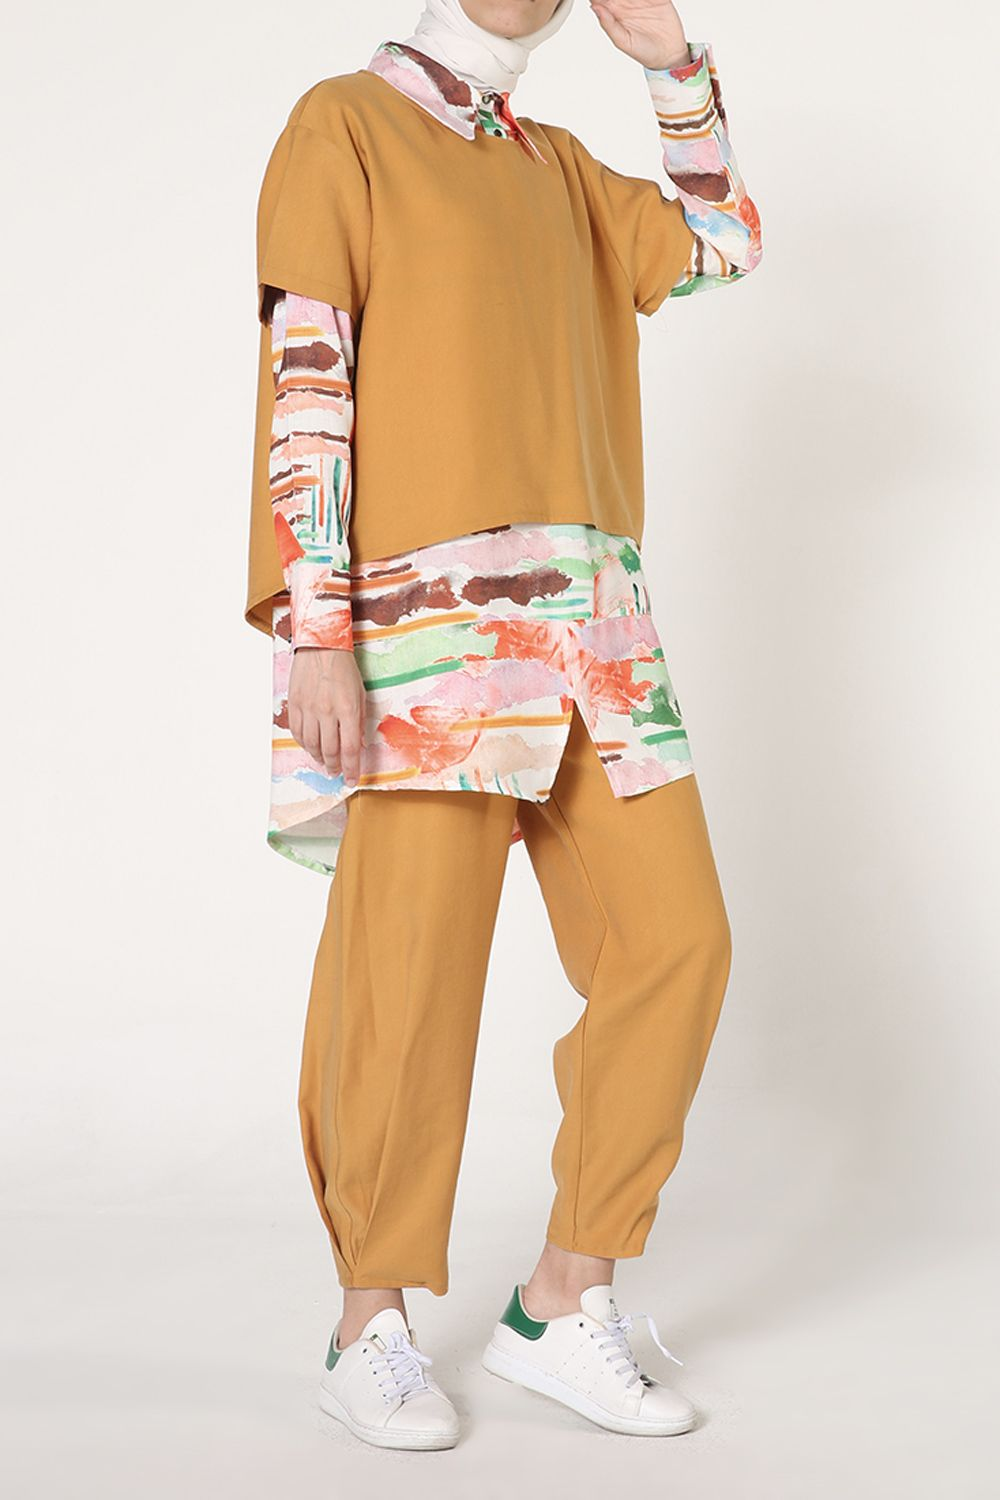 Patterned Blouse Shirt and Pants 3 Pieces Outfit Set